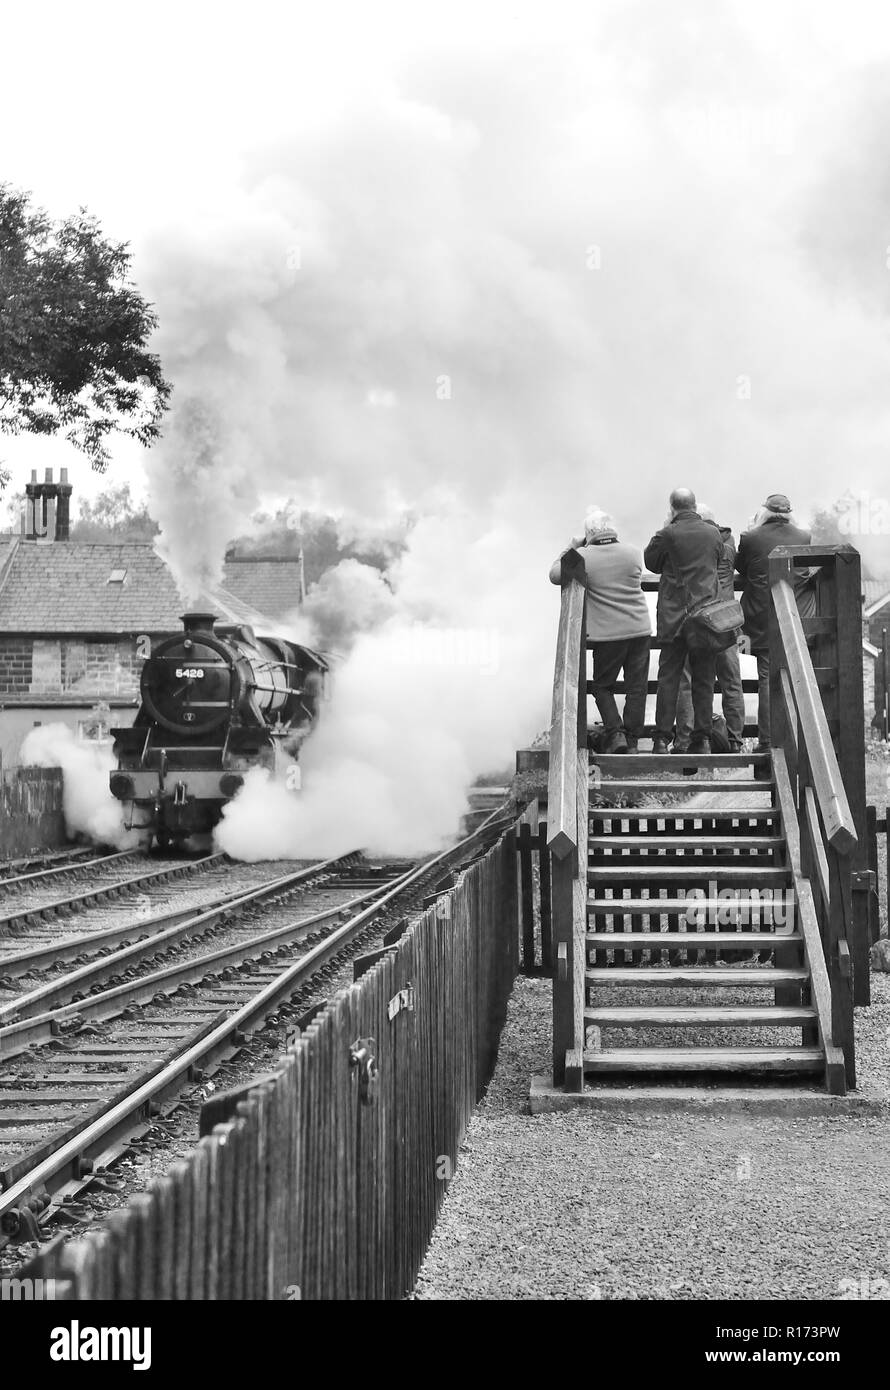 Photographers capture a smoky steam train departure from Grosmont on the North Yorkshire Moors Railway. - Stock Image